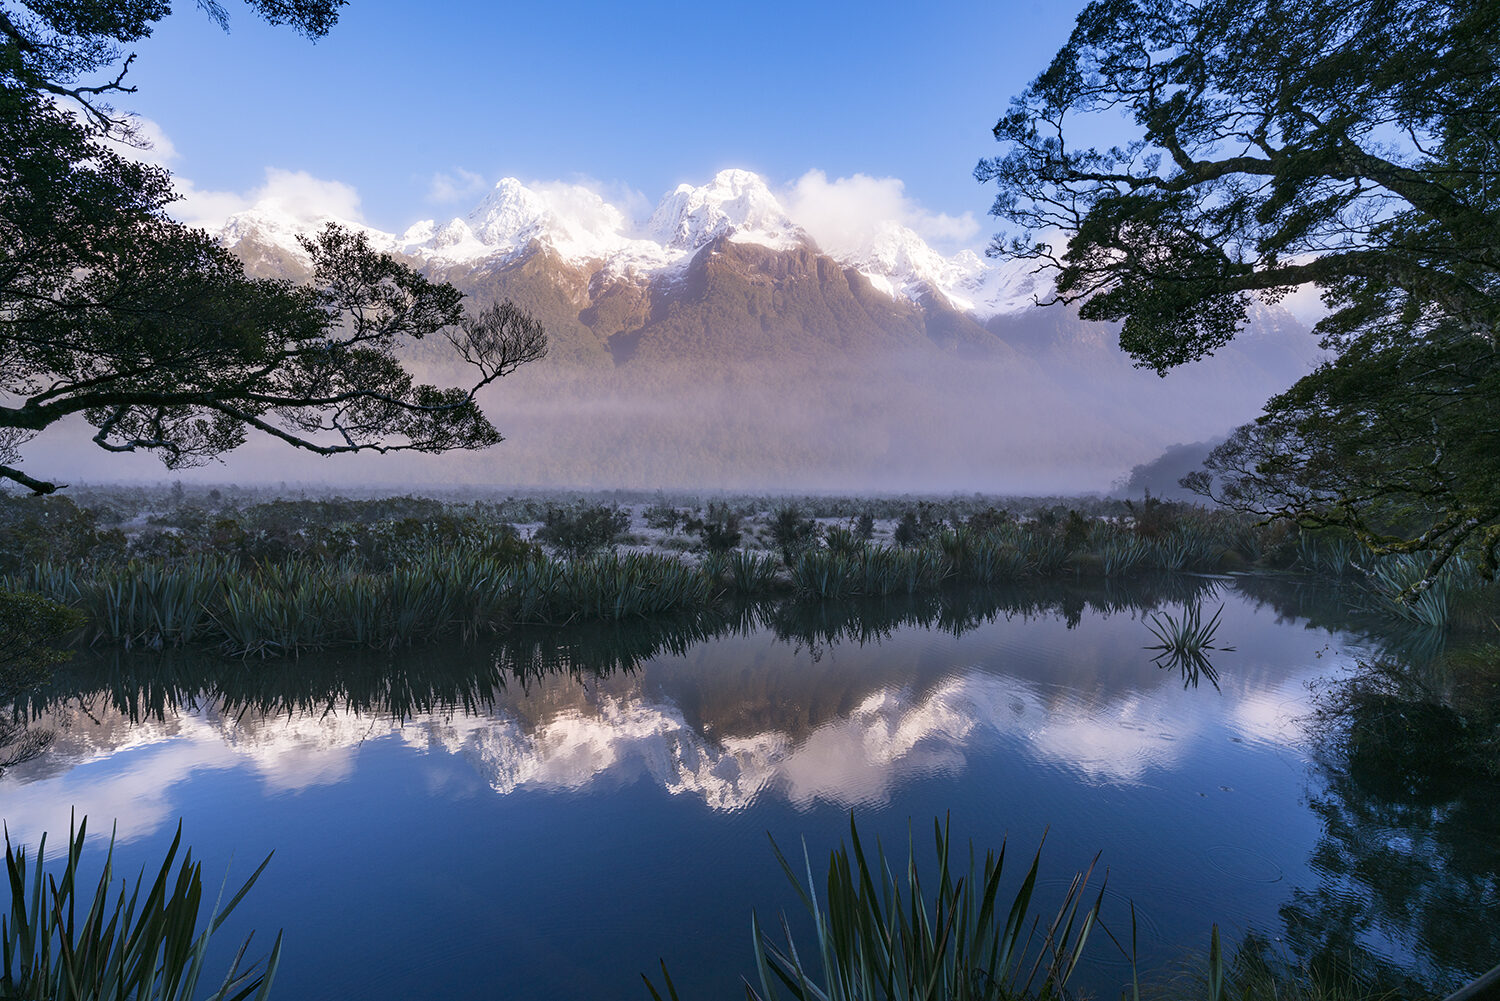 Mountains and trees reflected in a lake.